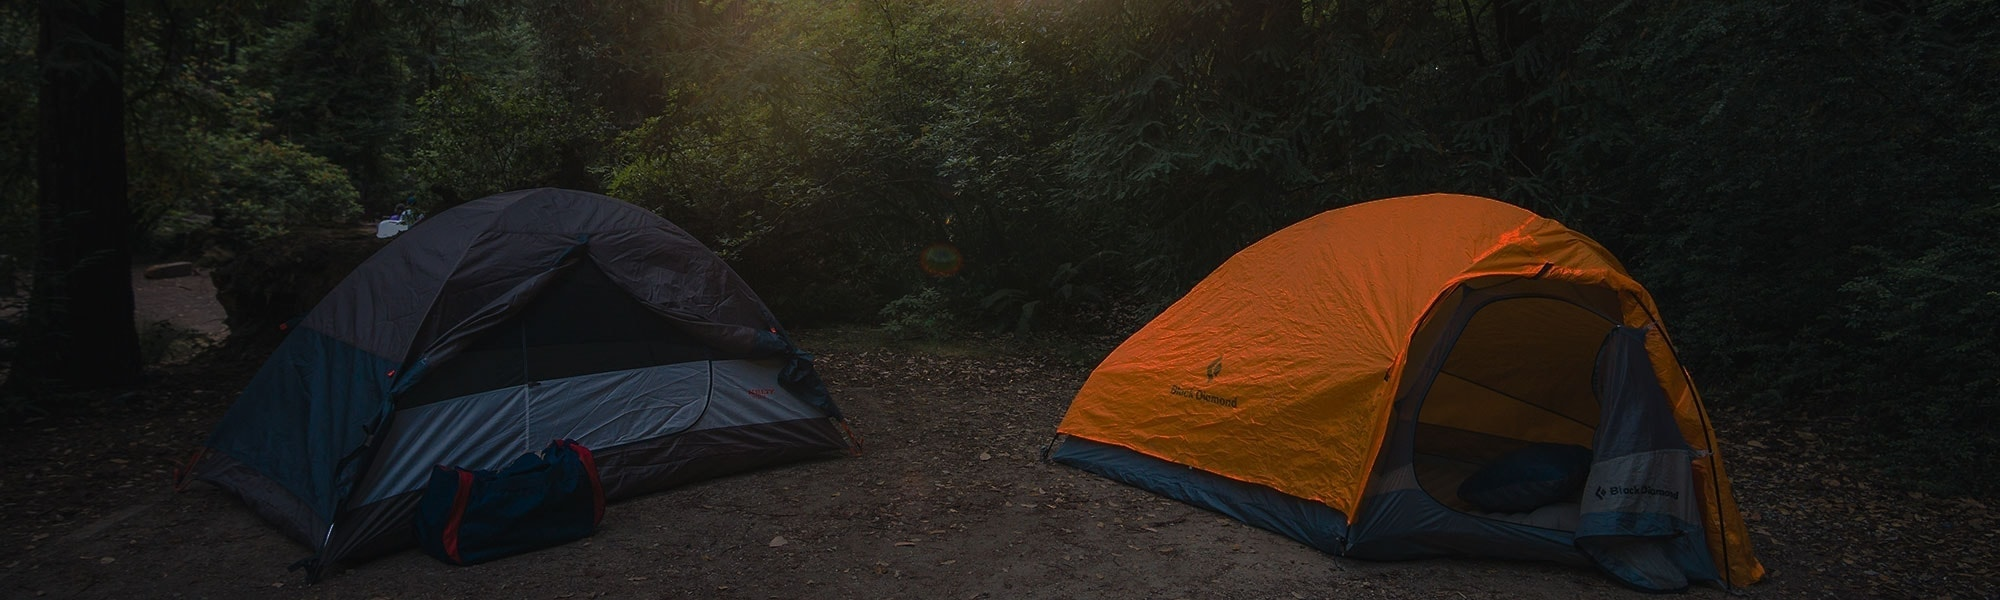 Hike Much Banner with two tents